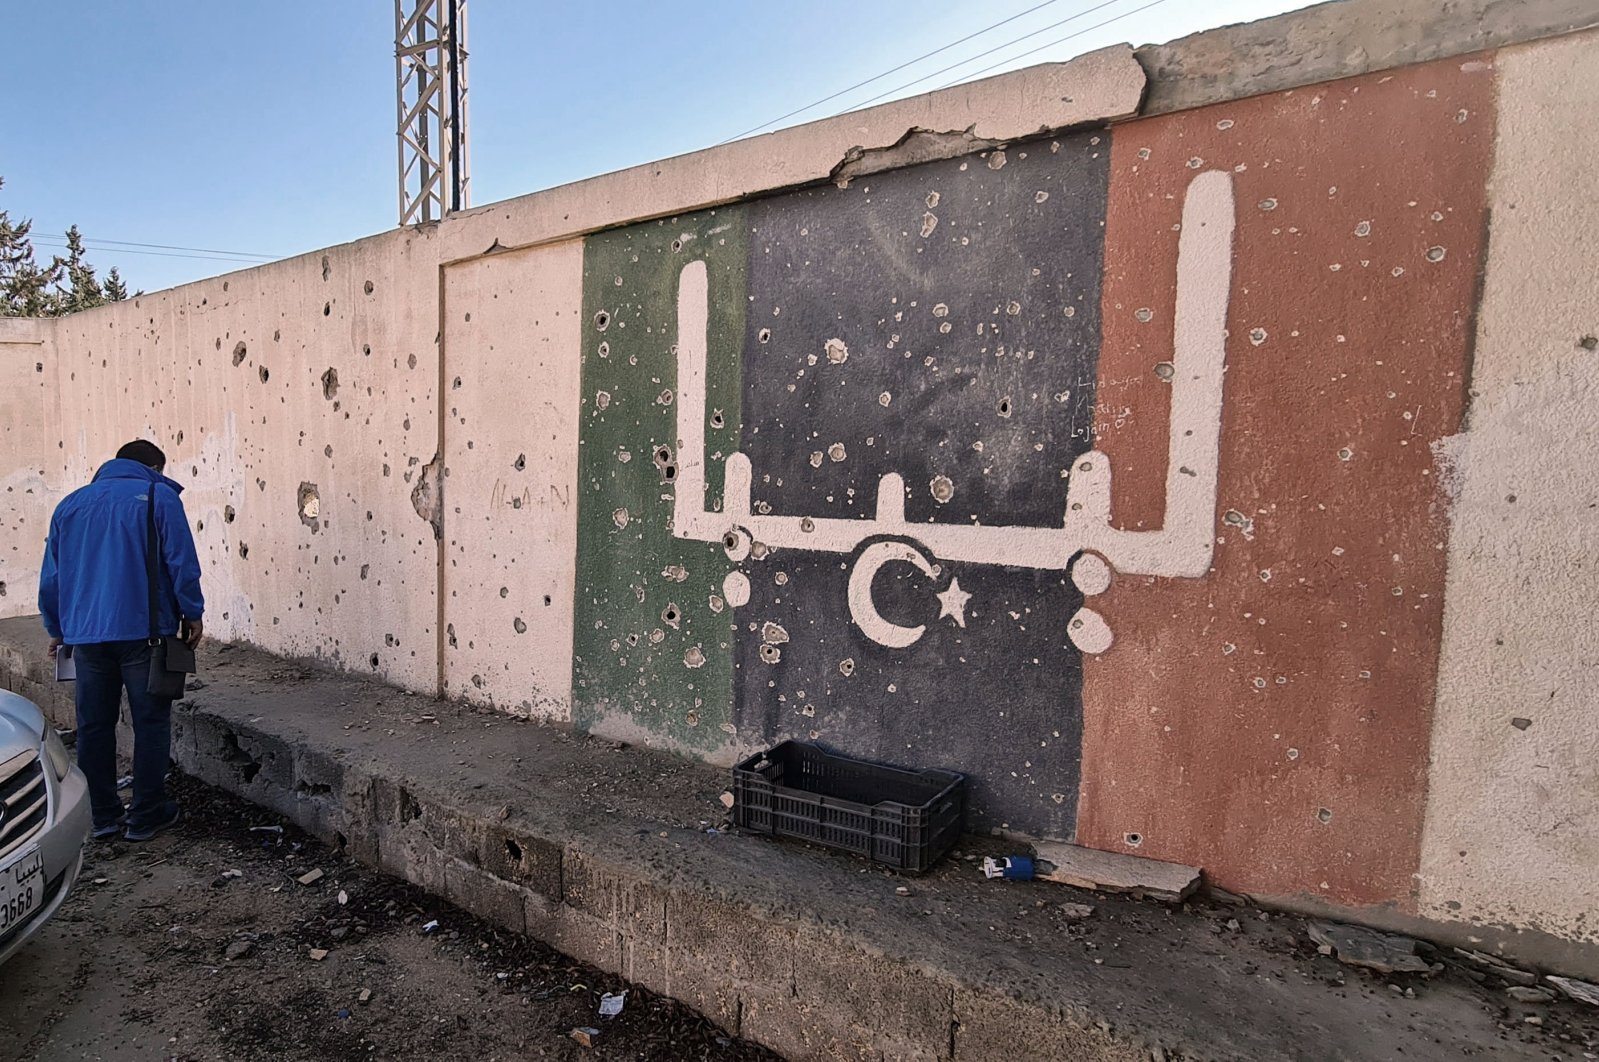 A Libyan volunteer takes part in an operation called by parents and teachers to renovate the Libya's Martyrs school, which was damaged during fighting between rival factions, in the capital Tripoli's suburb of Ain Zara, Nov. 19, 2020. (AFP Photo)